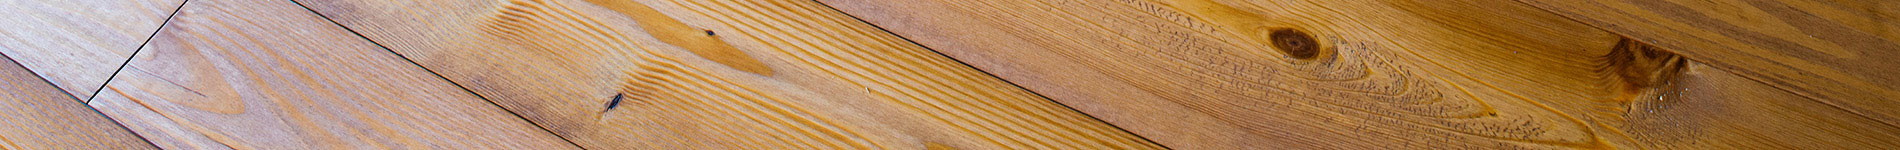 Smokey Notes - AMERICAN HARDWOODS